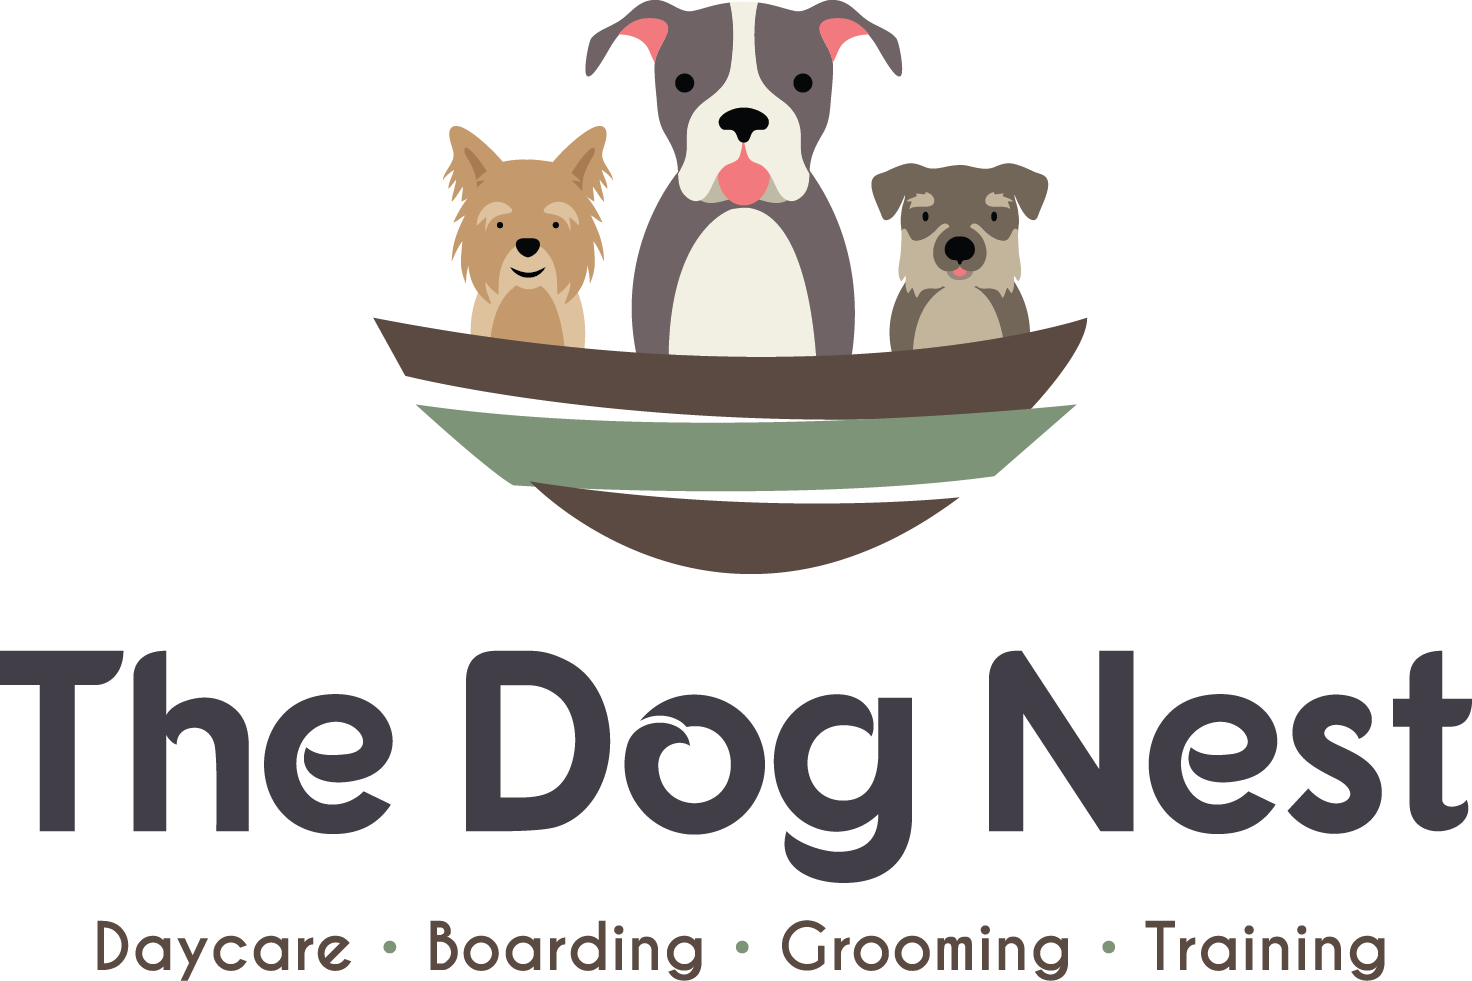 The-Dog-Nest-Brookfield-Doggy-Daycare-Boarding-Grooming-Training-Logo